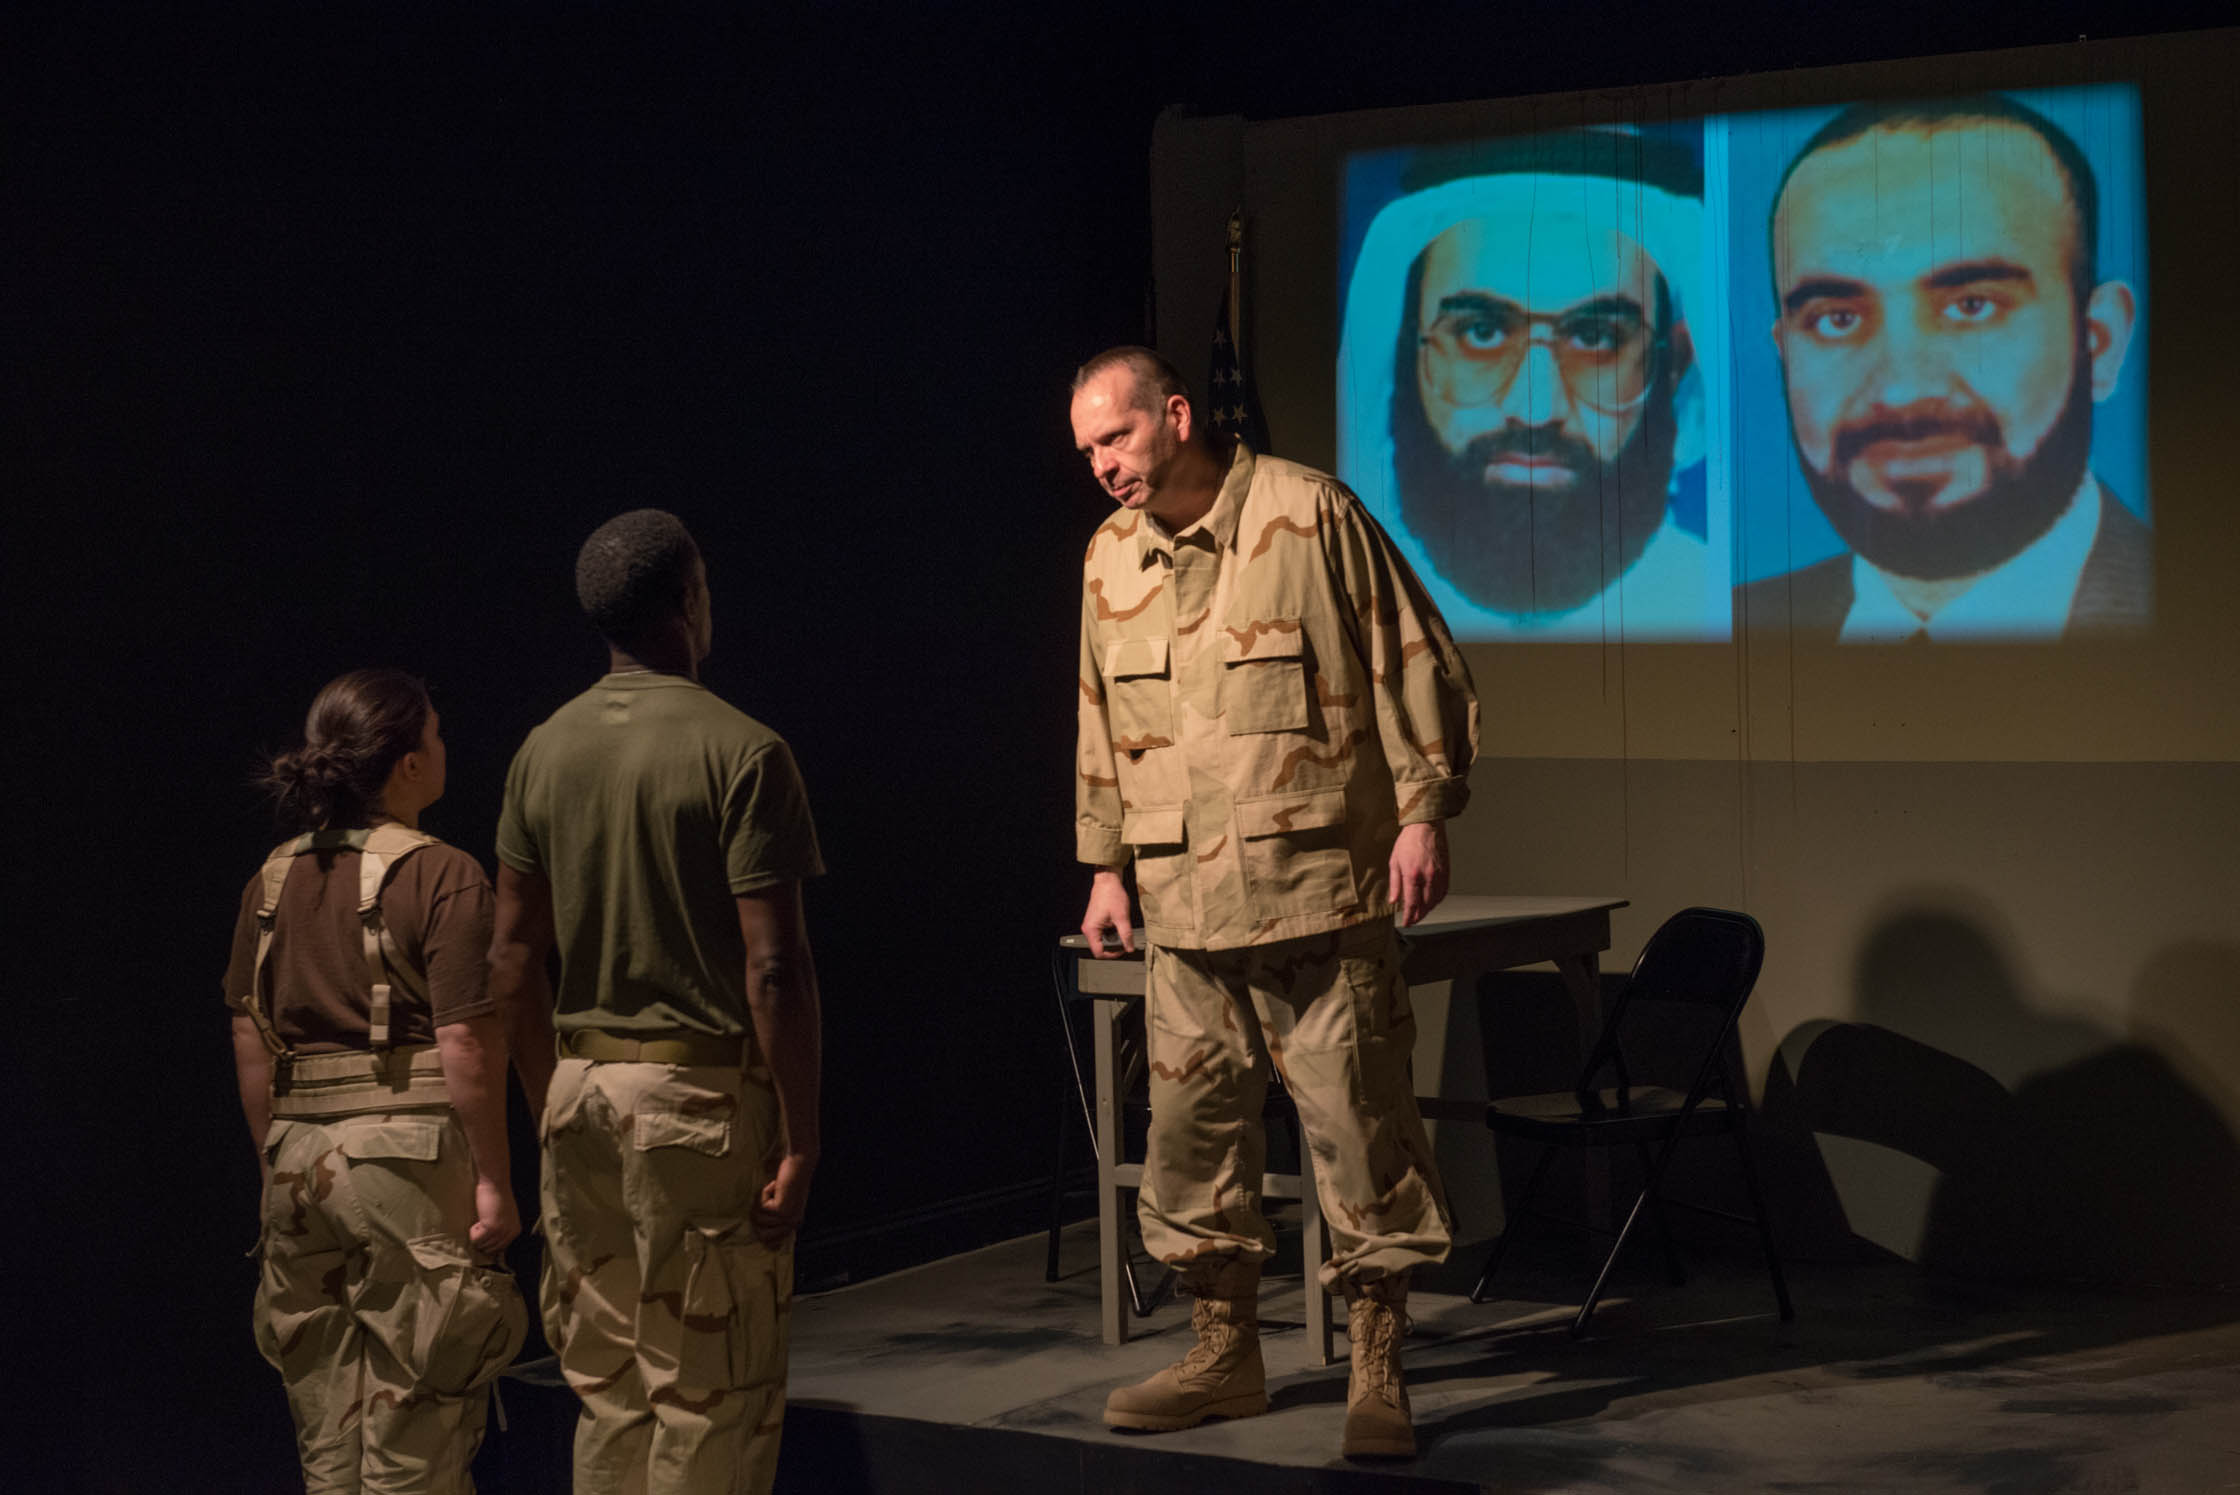 """Tony St. Clair as Col. Lewis in """"Skin for Skin"""" from The Agency Theatre Collective. Photo by Bill Richert."""